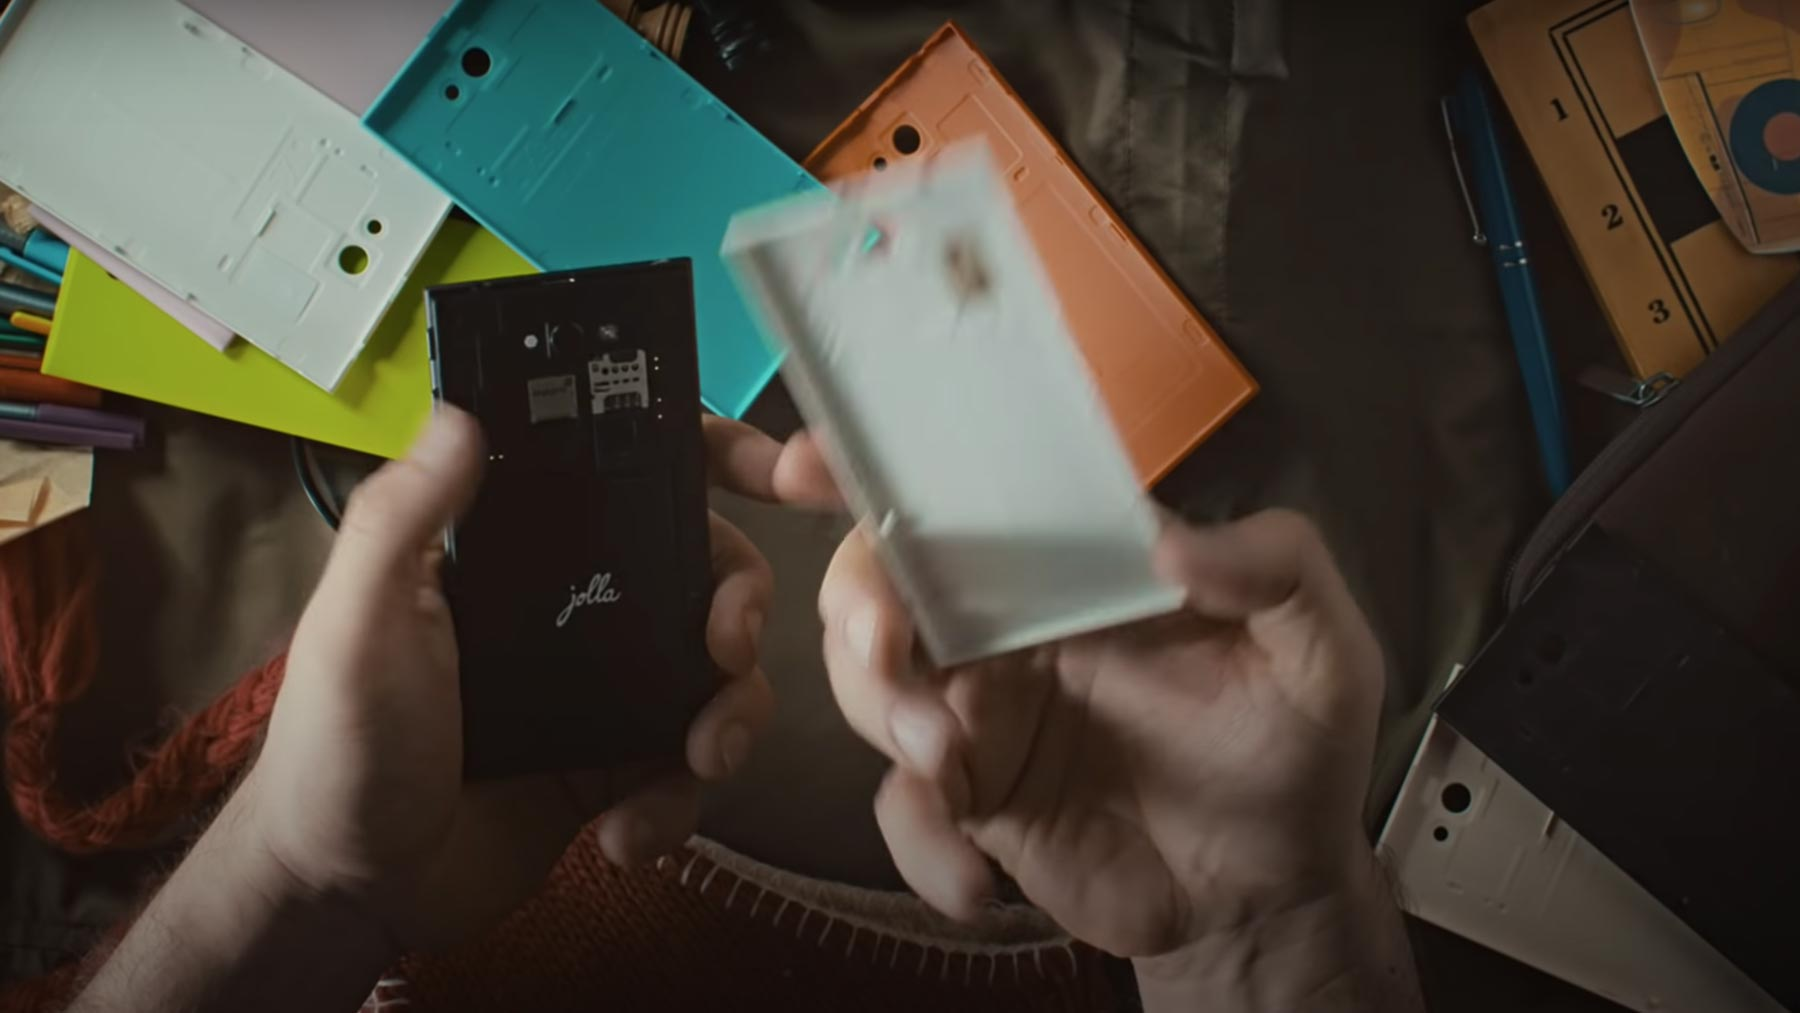 Jolla phone with different TOH